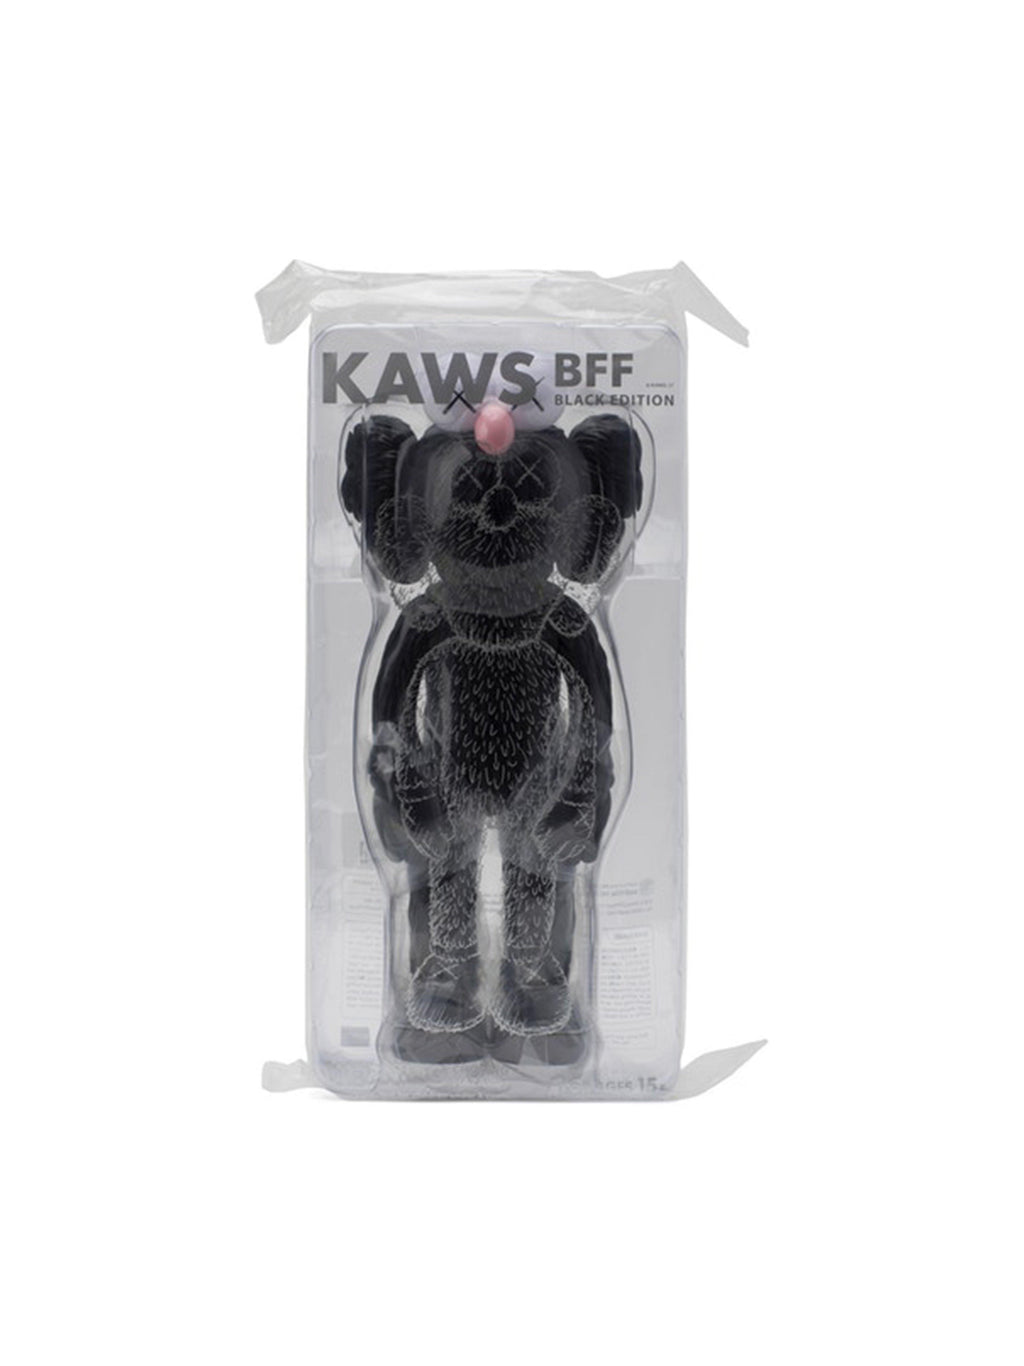 KAWS BFF Open Edition Vinyl Figure Black - PRIOR